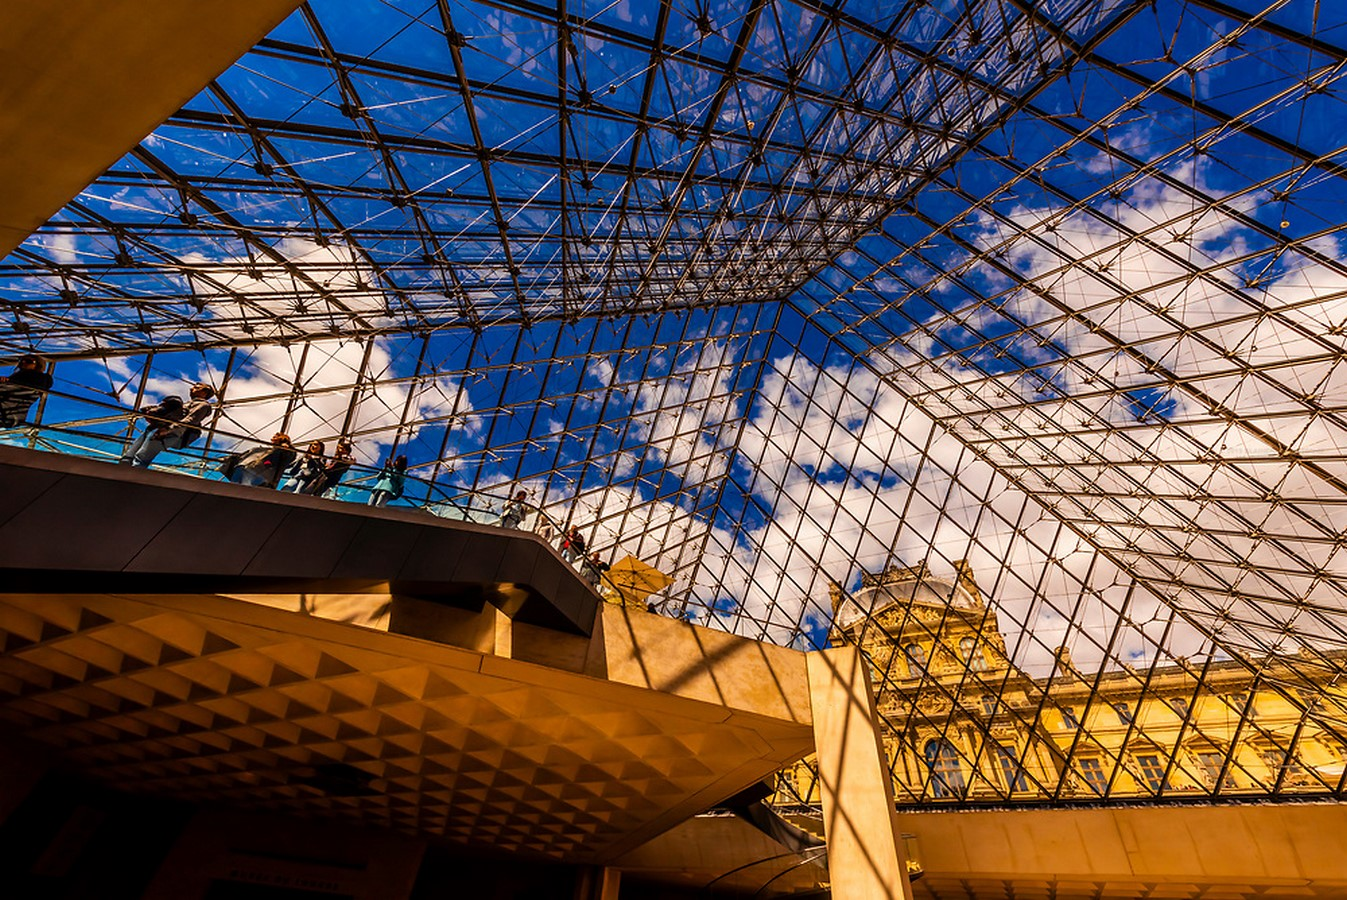 10 Things you did not know about Louvre Pyramid by I.M. Pei - sHEET8